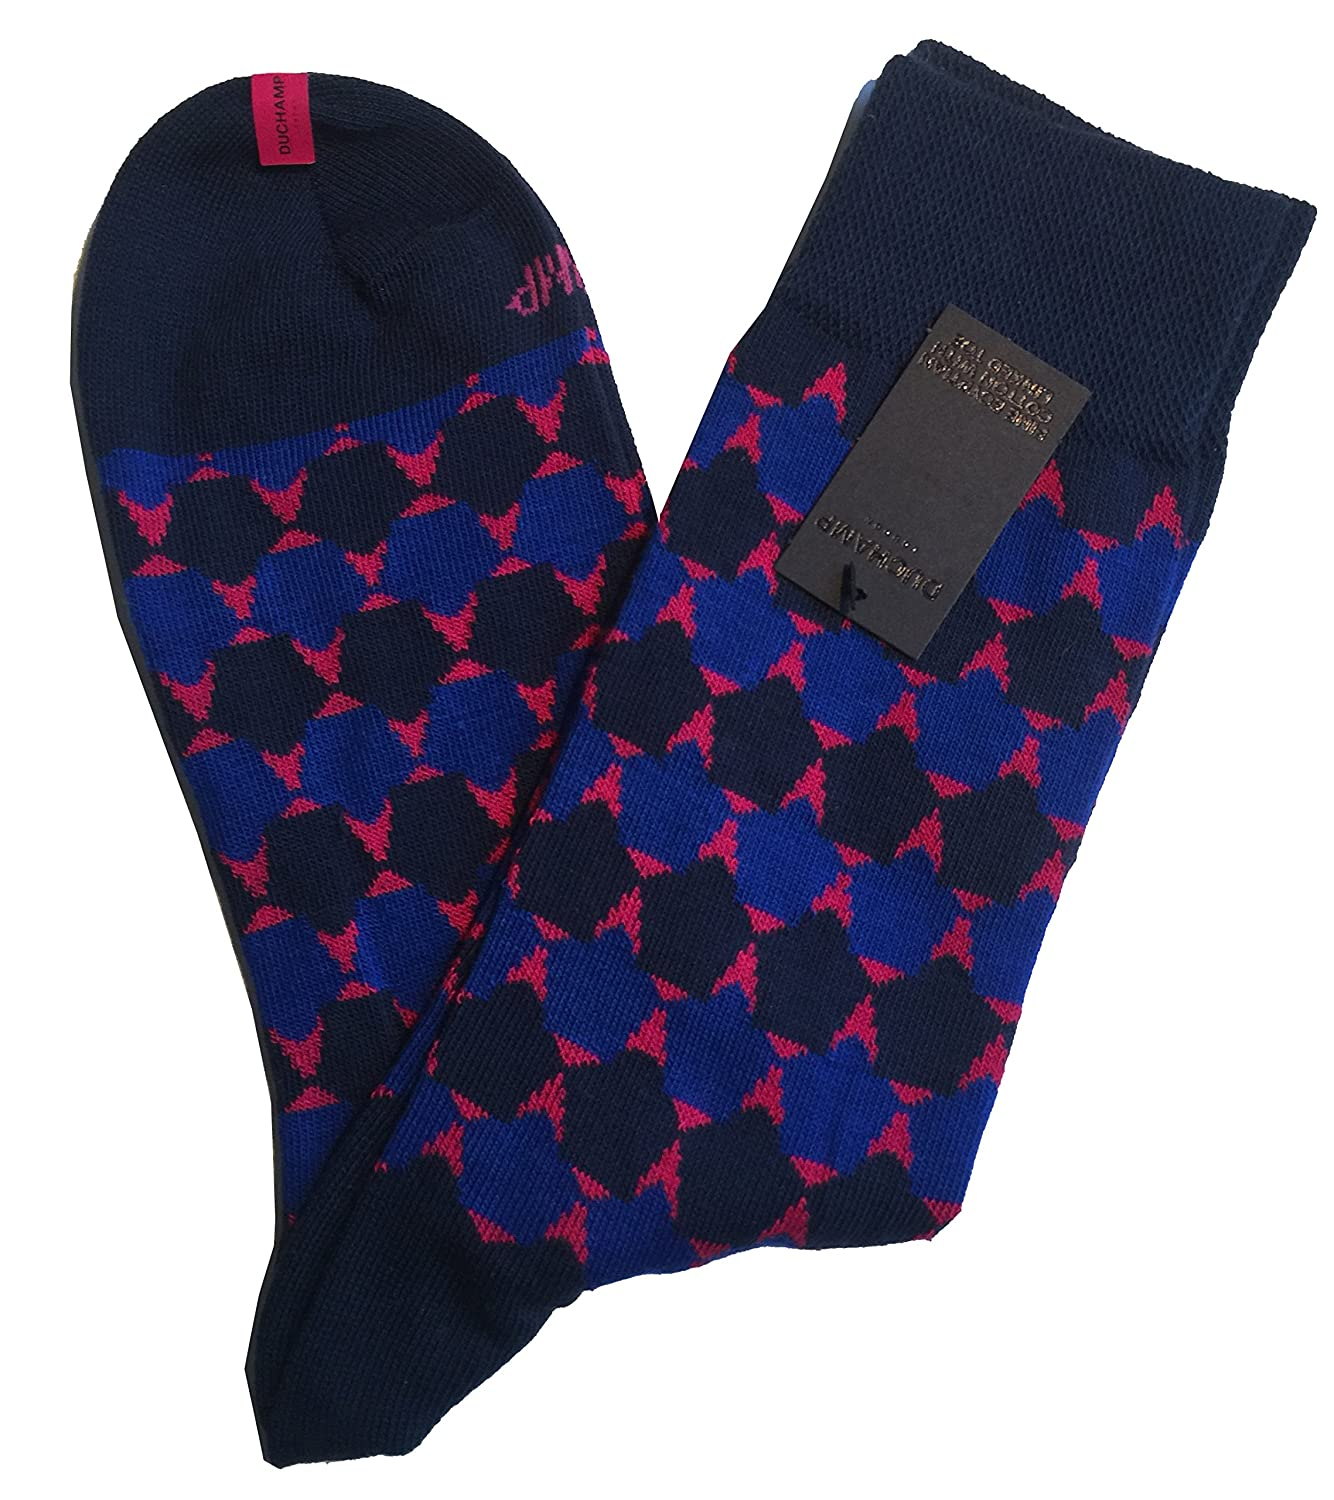 DUCHAMP LONDON Mens Multi Grey Geometric Pattern Socks One Size UK 7-11 EU 41-46